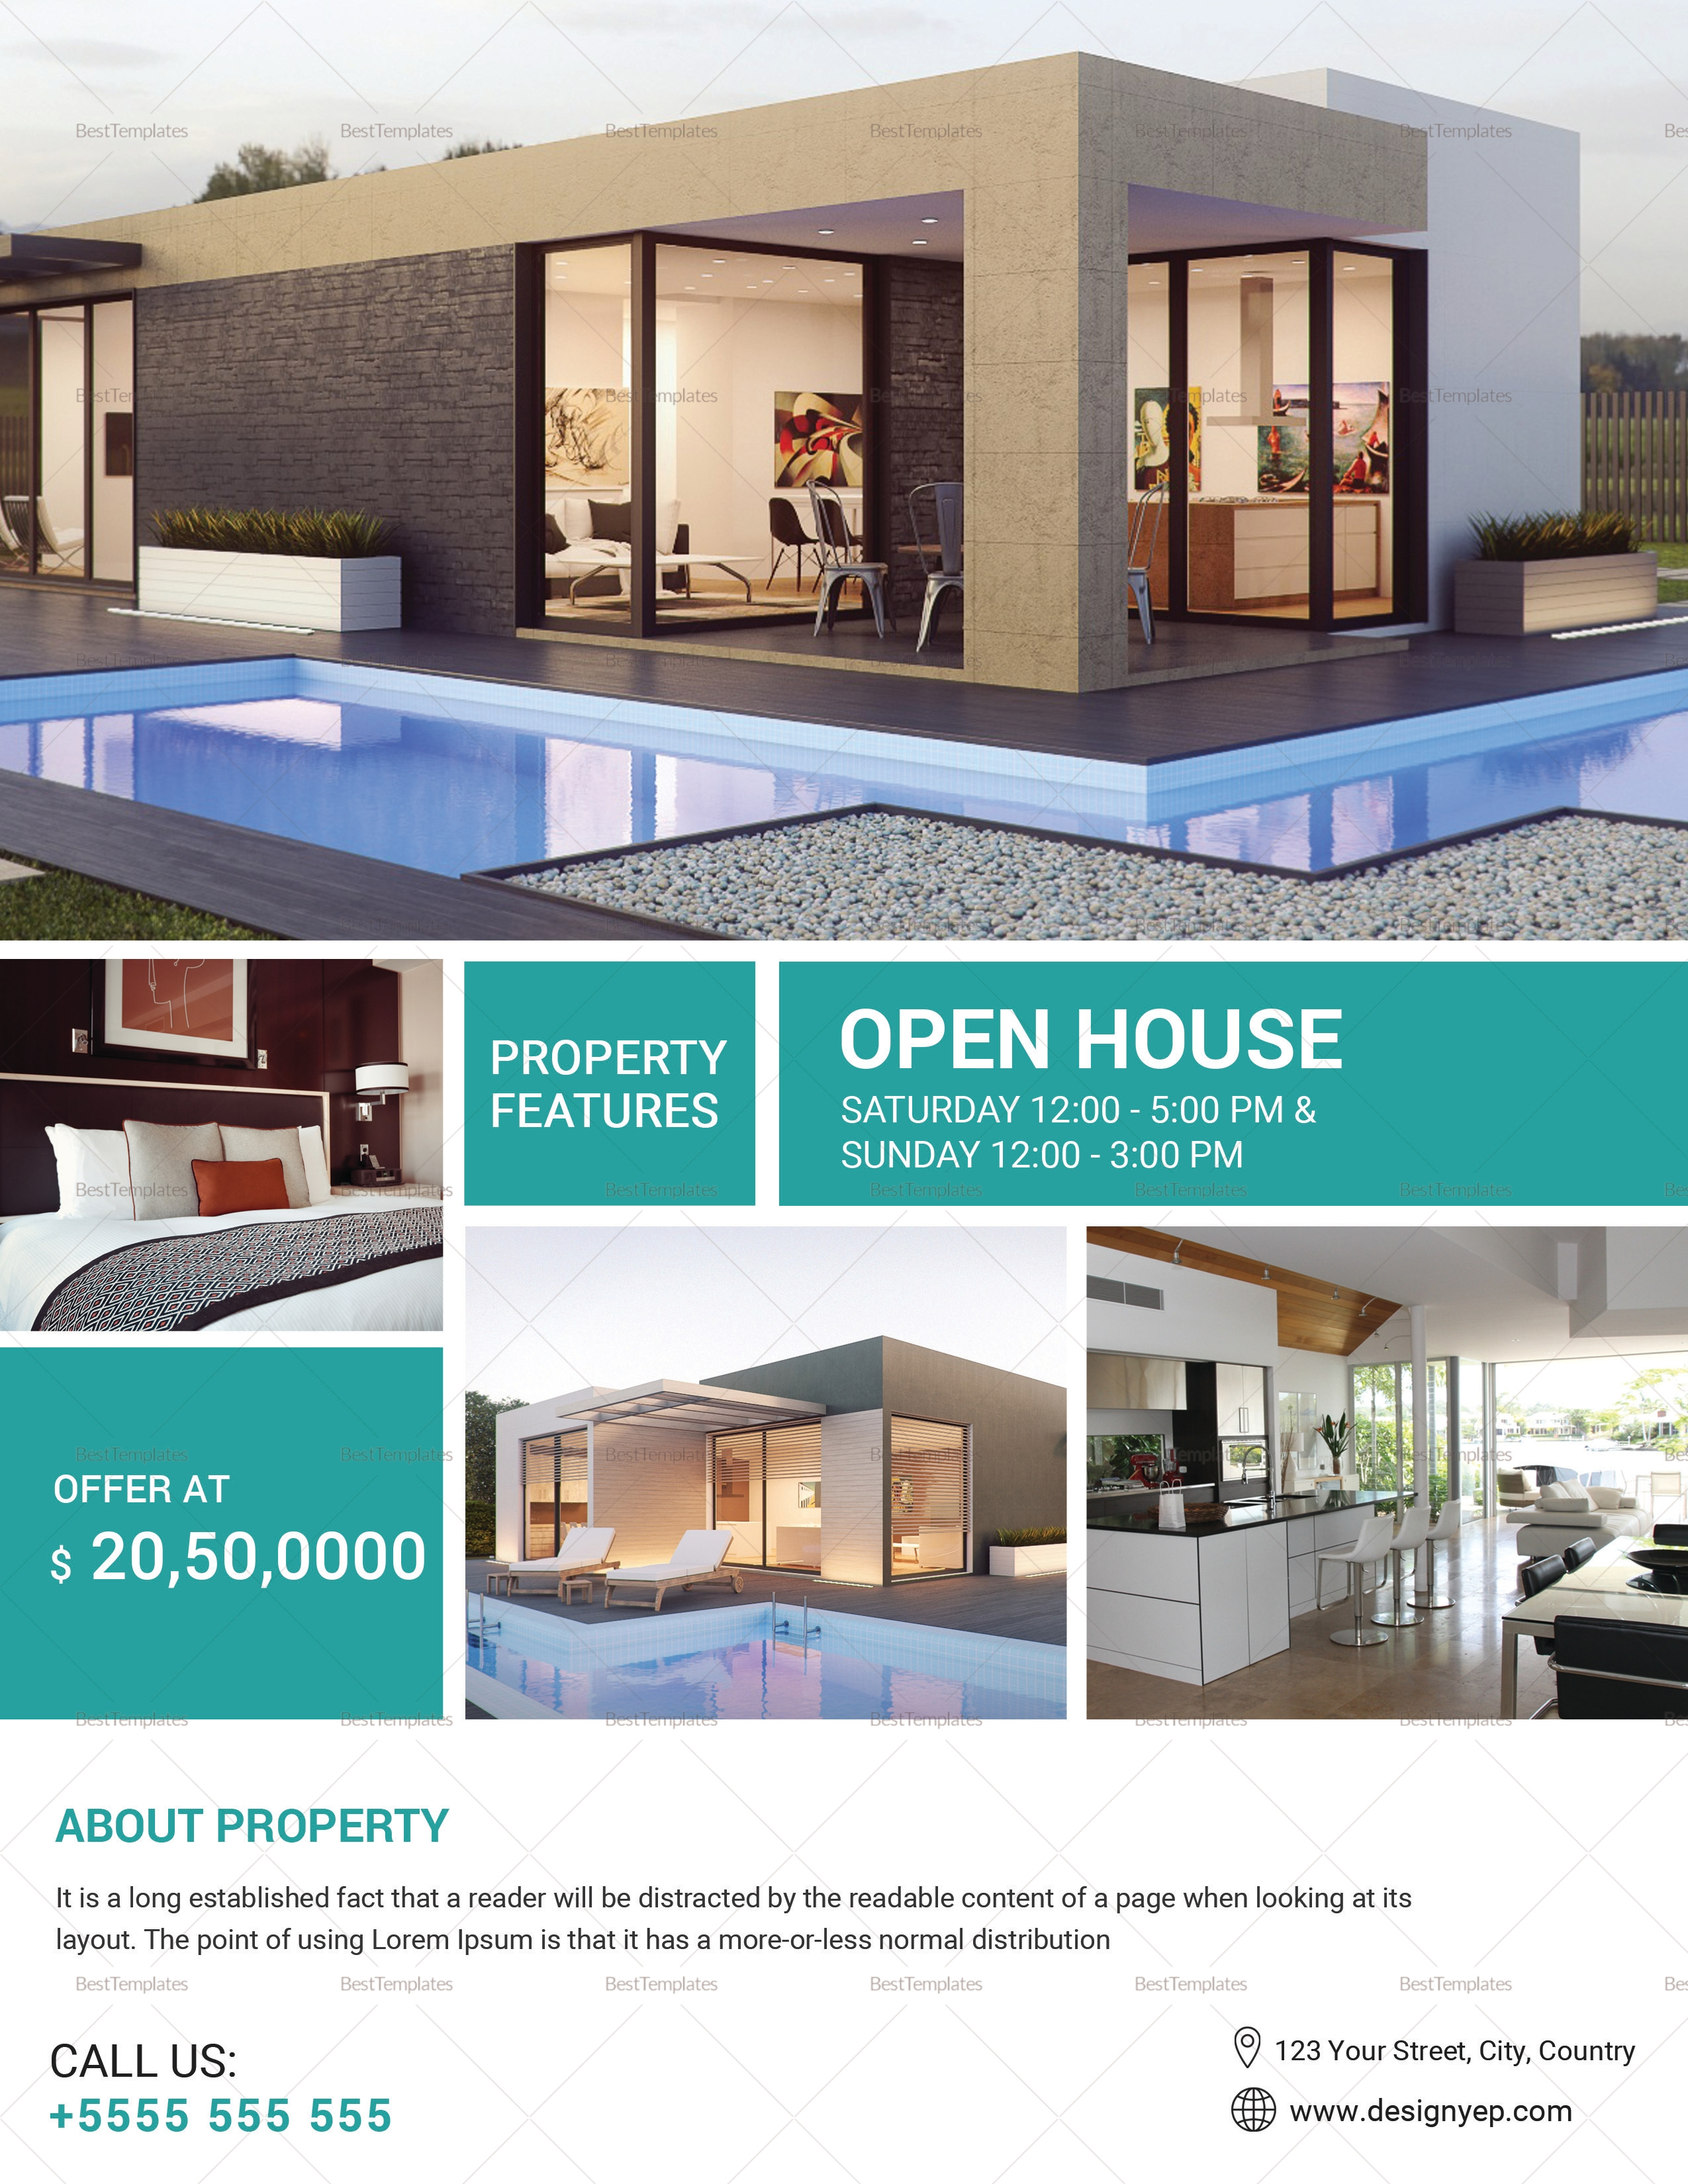 open house for sale advertisement template